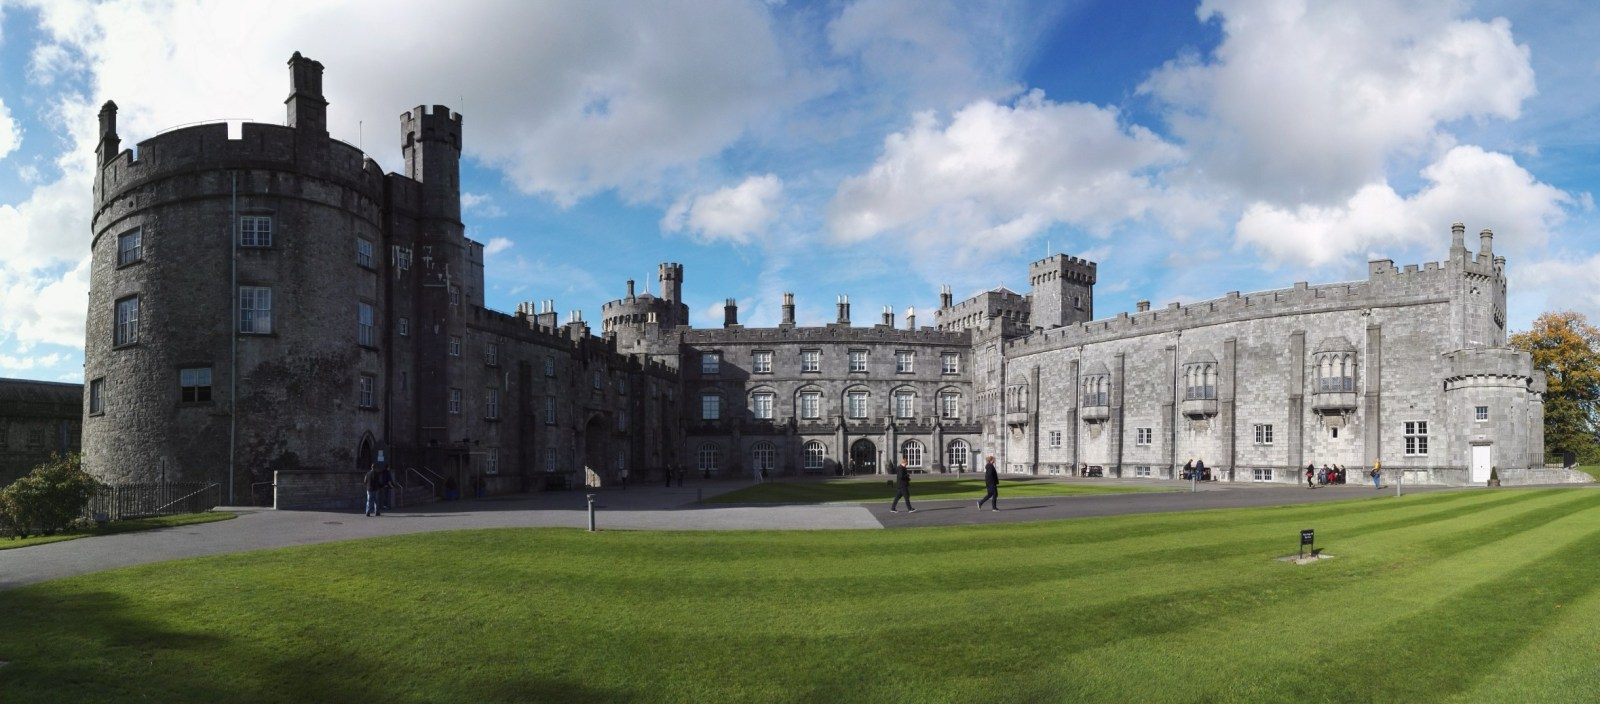 The Best Areas to Stay in Kilkenny